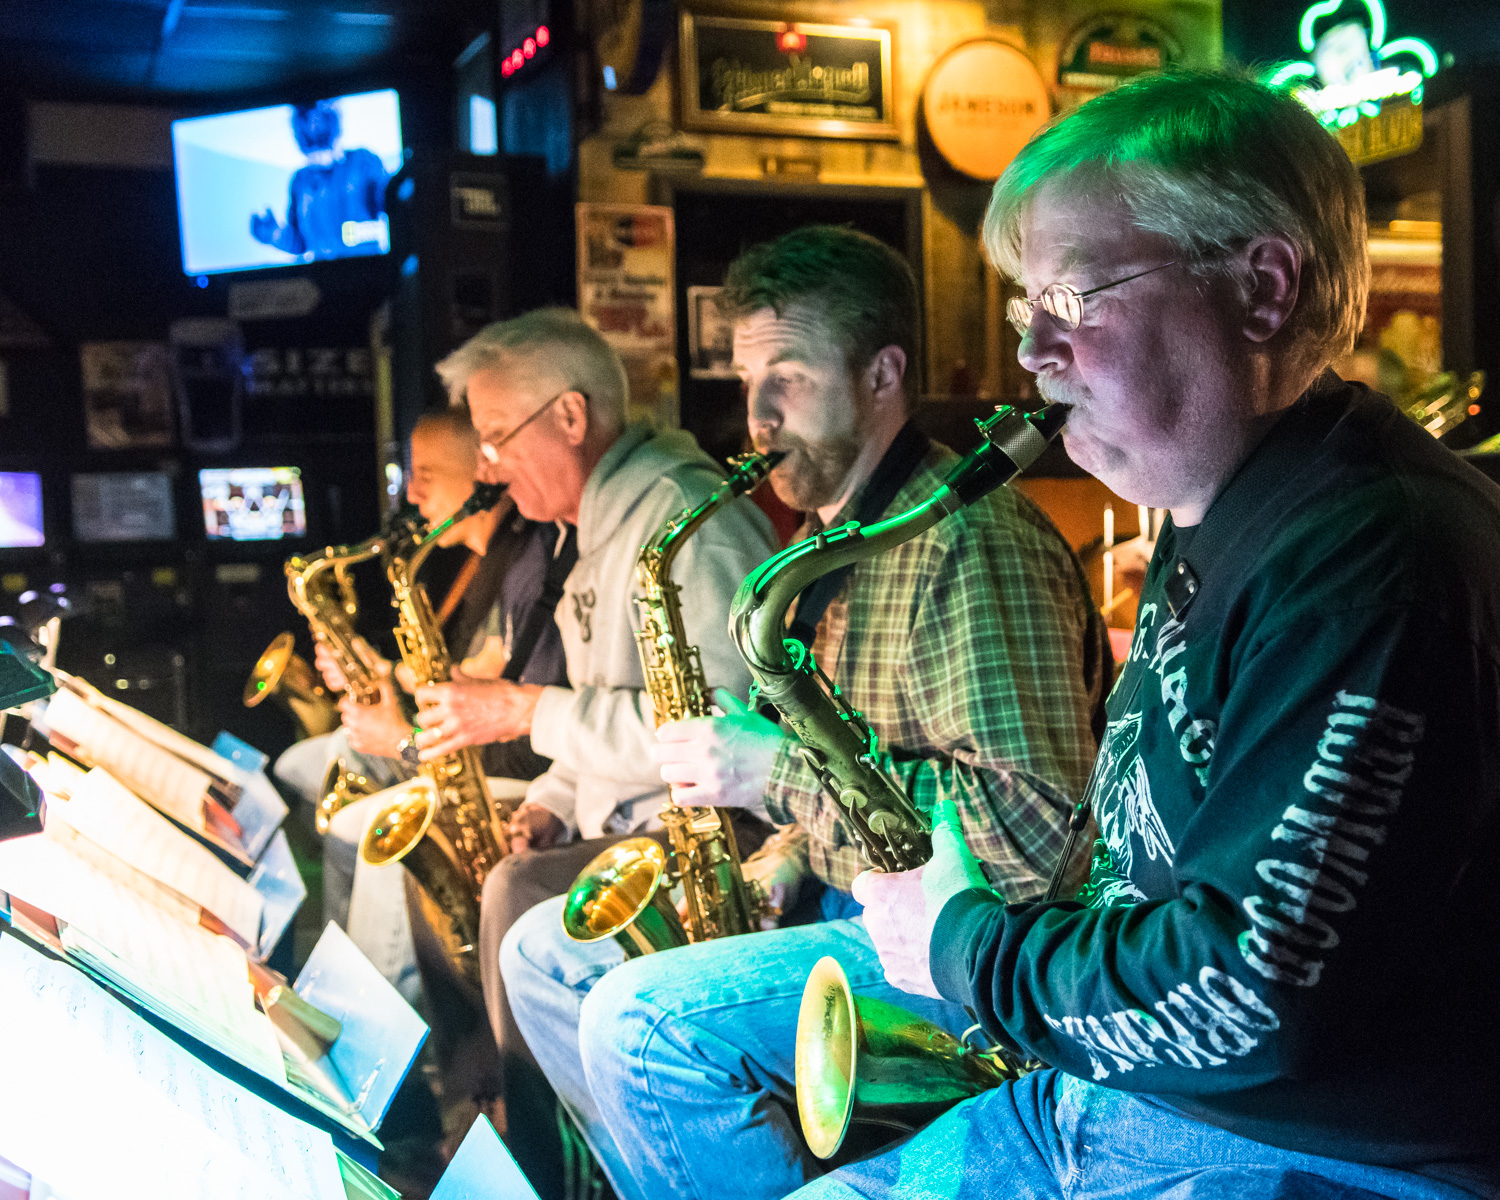 (Right to Left) Patrick Odell, tenor Saxophone, plays along with Garrett Kornman, alto saxophone, and Steve Jacob, alto saxophone, during The Parkside Reunion Big Band's bi-weekly performance on April 4 at McAuliffe's Pub.